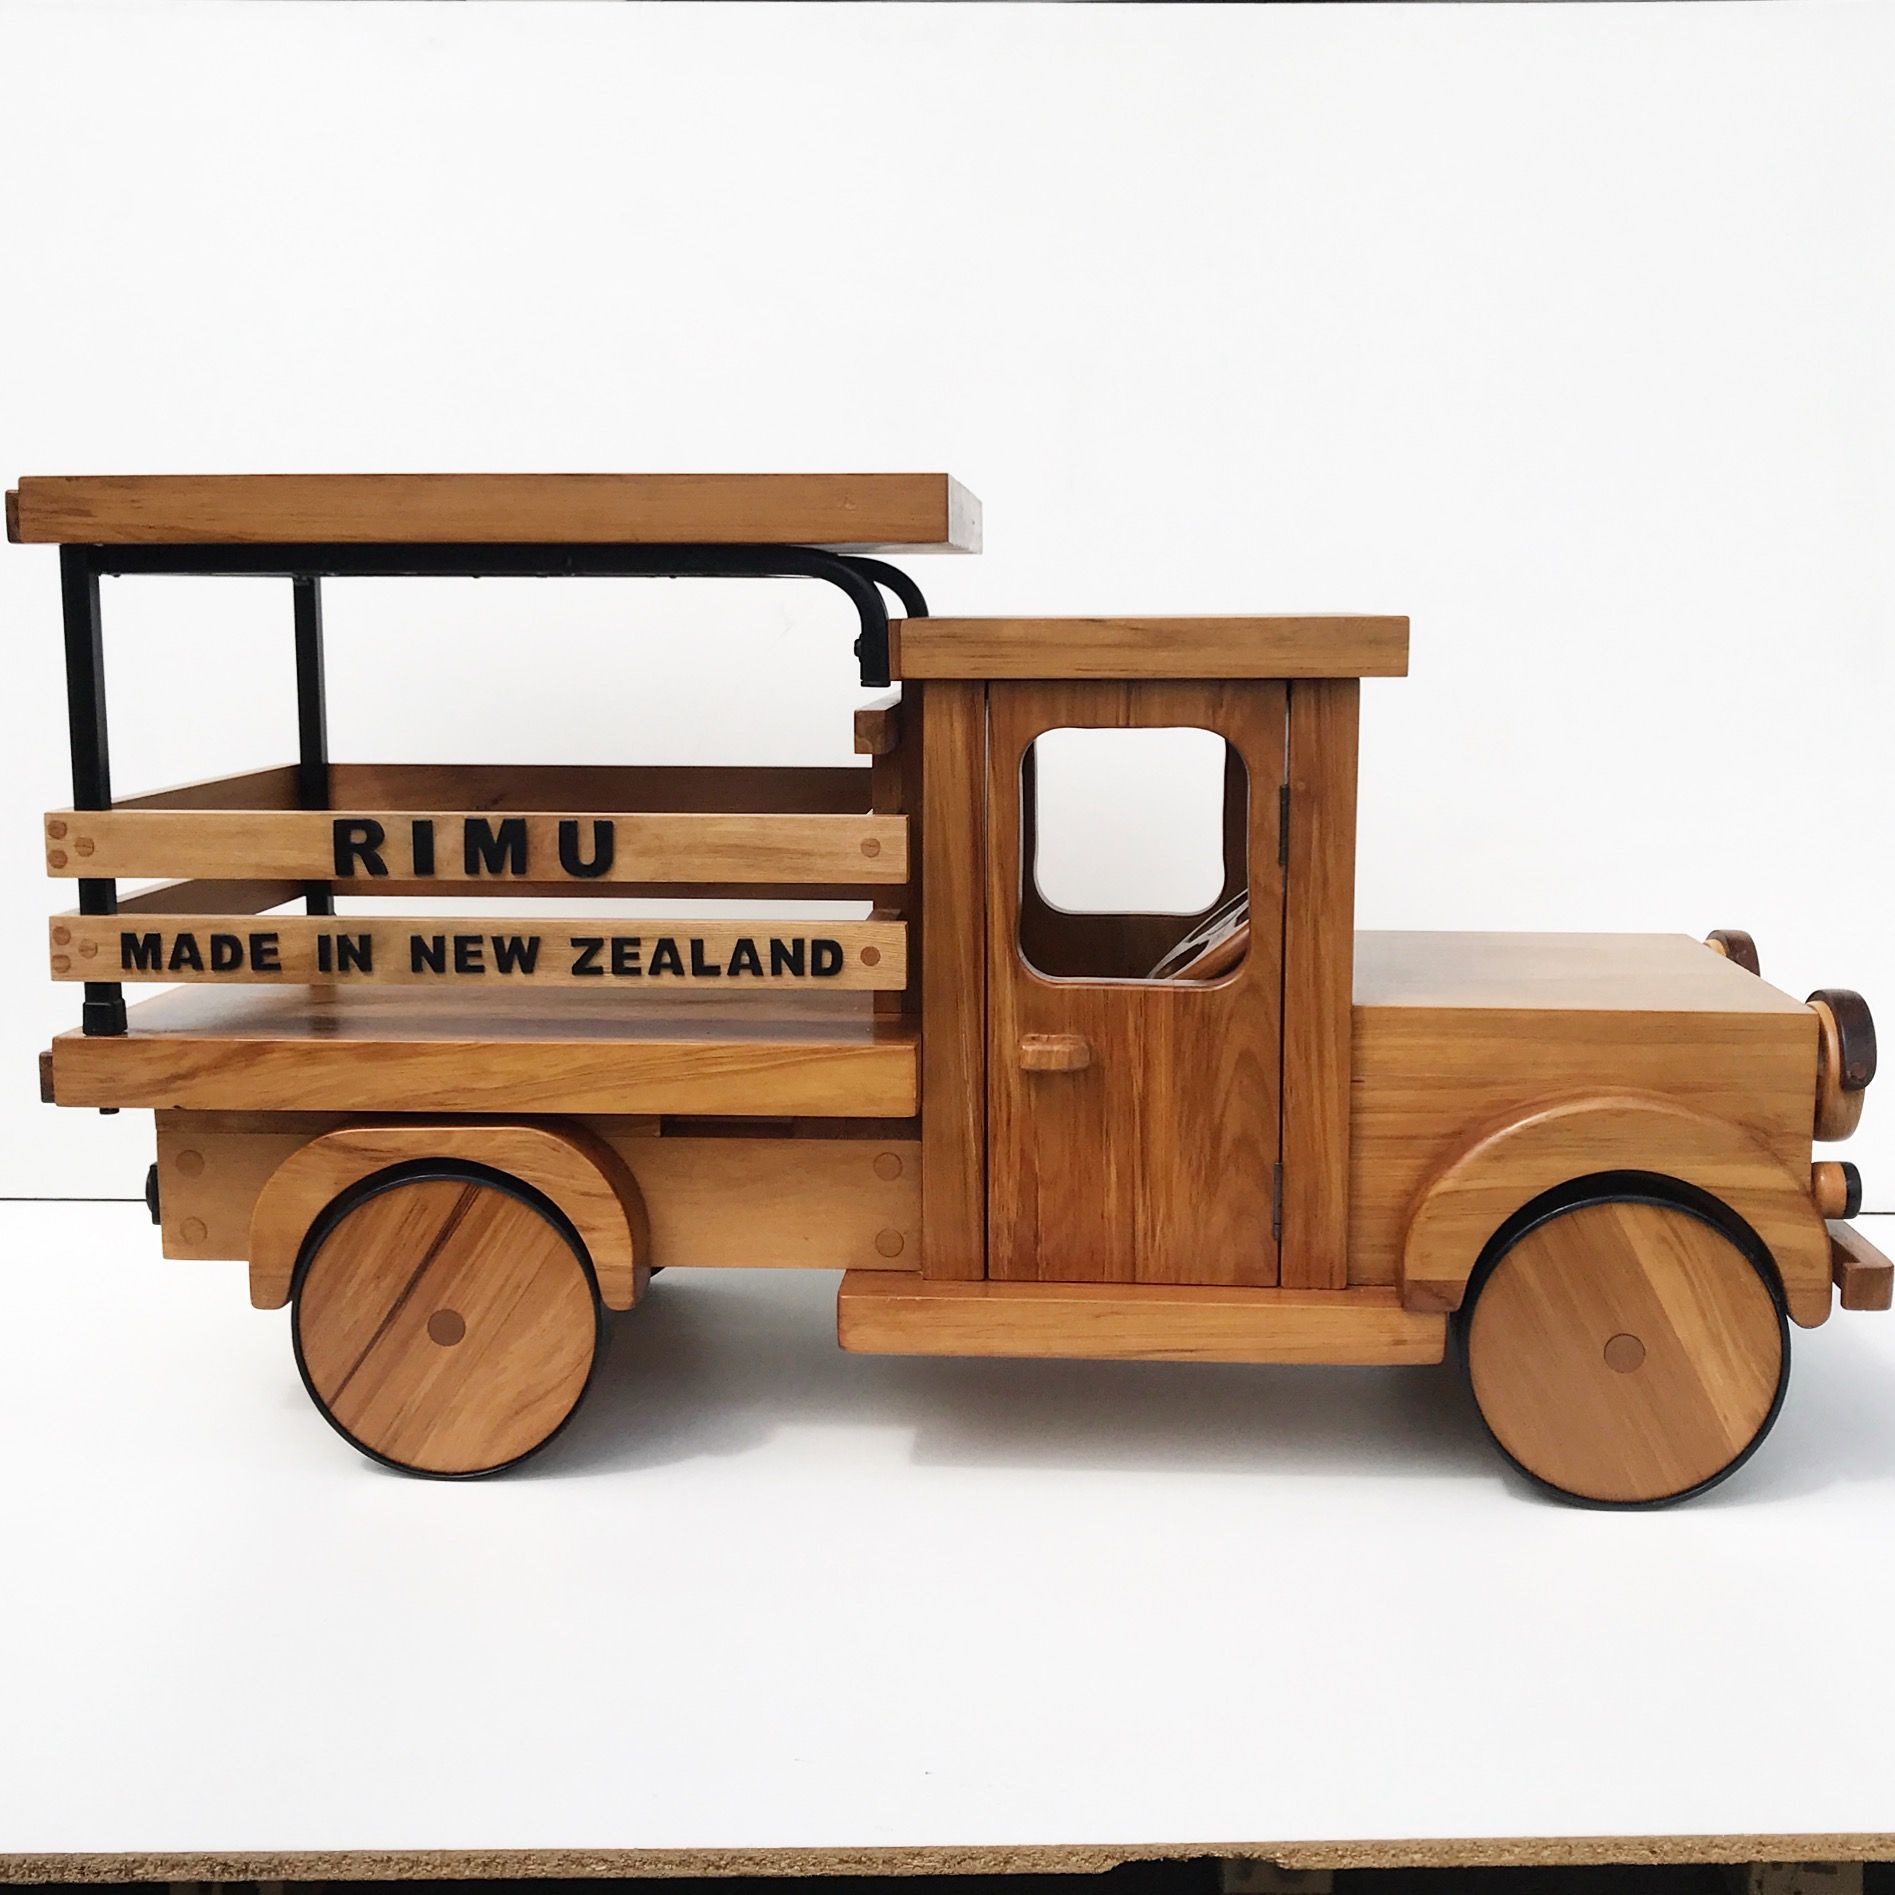 handcrafted car. made of nz rimu wooden craft shop | new